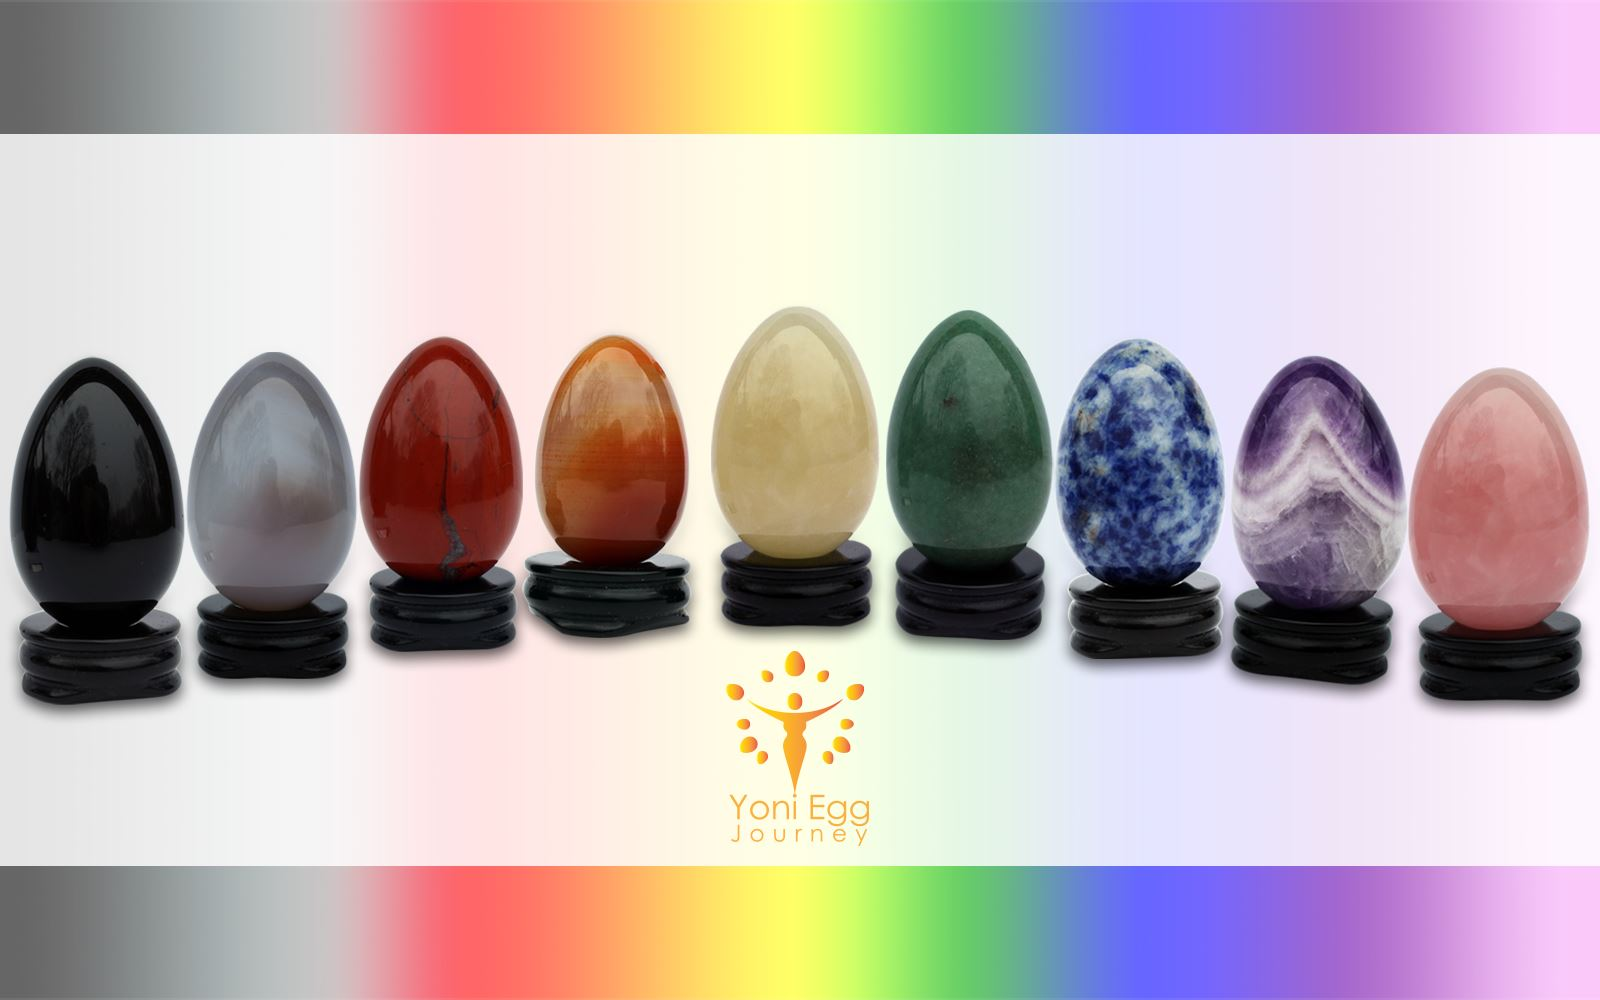 Color Effects and Meanings of Yoni Egg CrystalsYoni_Egg_Journeys